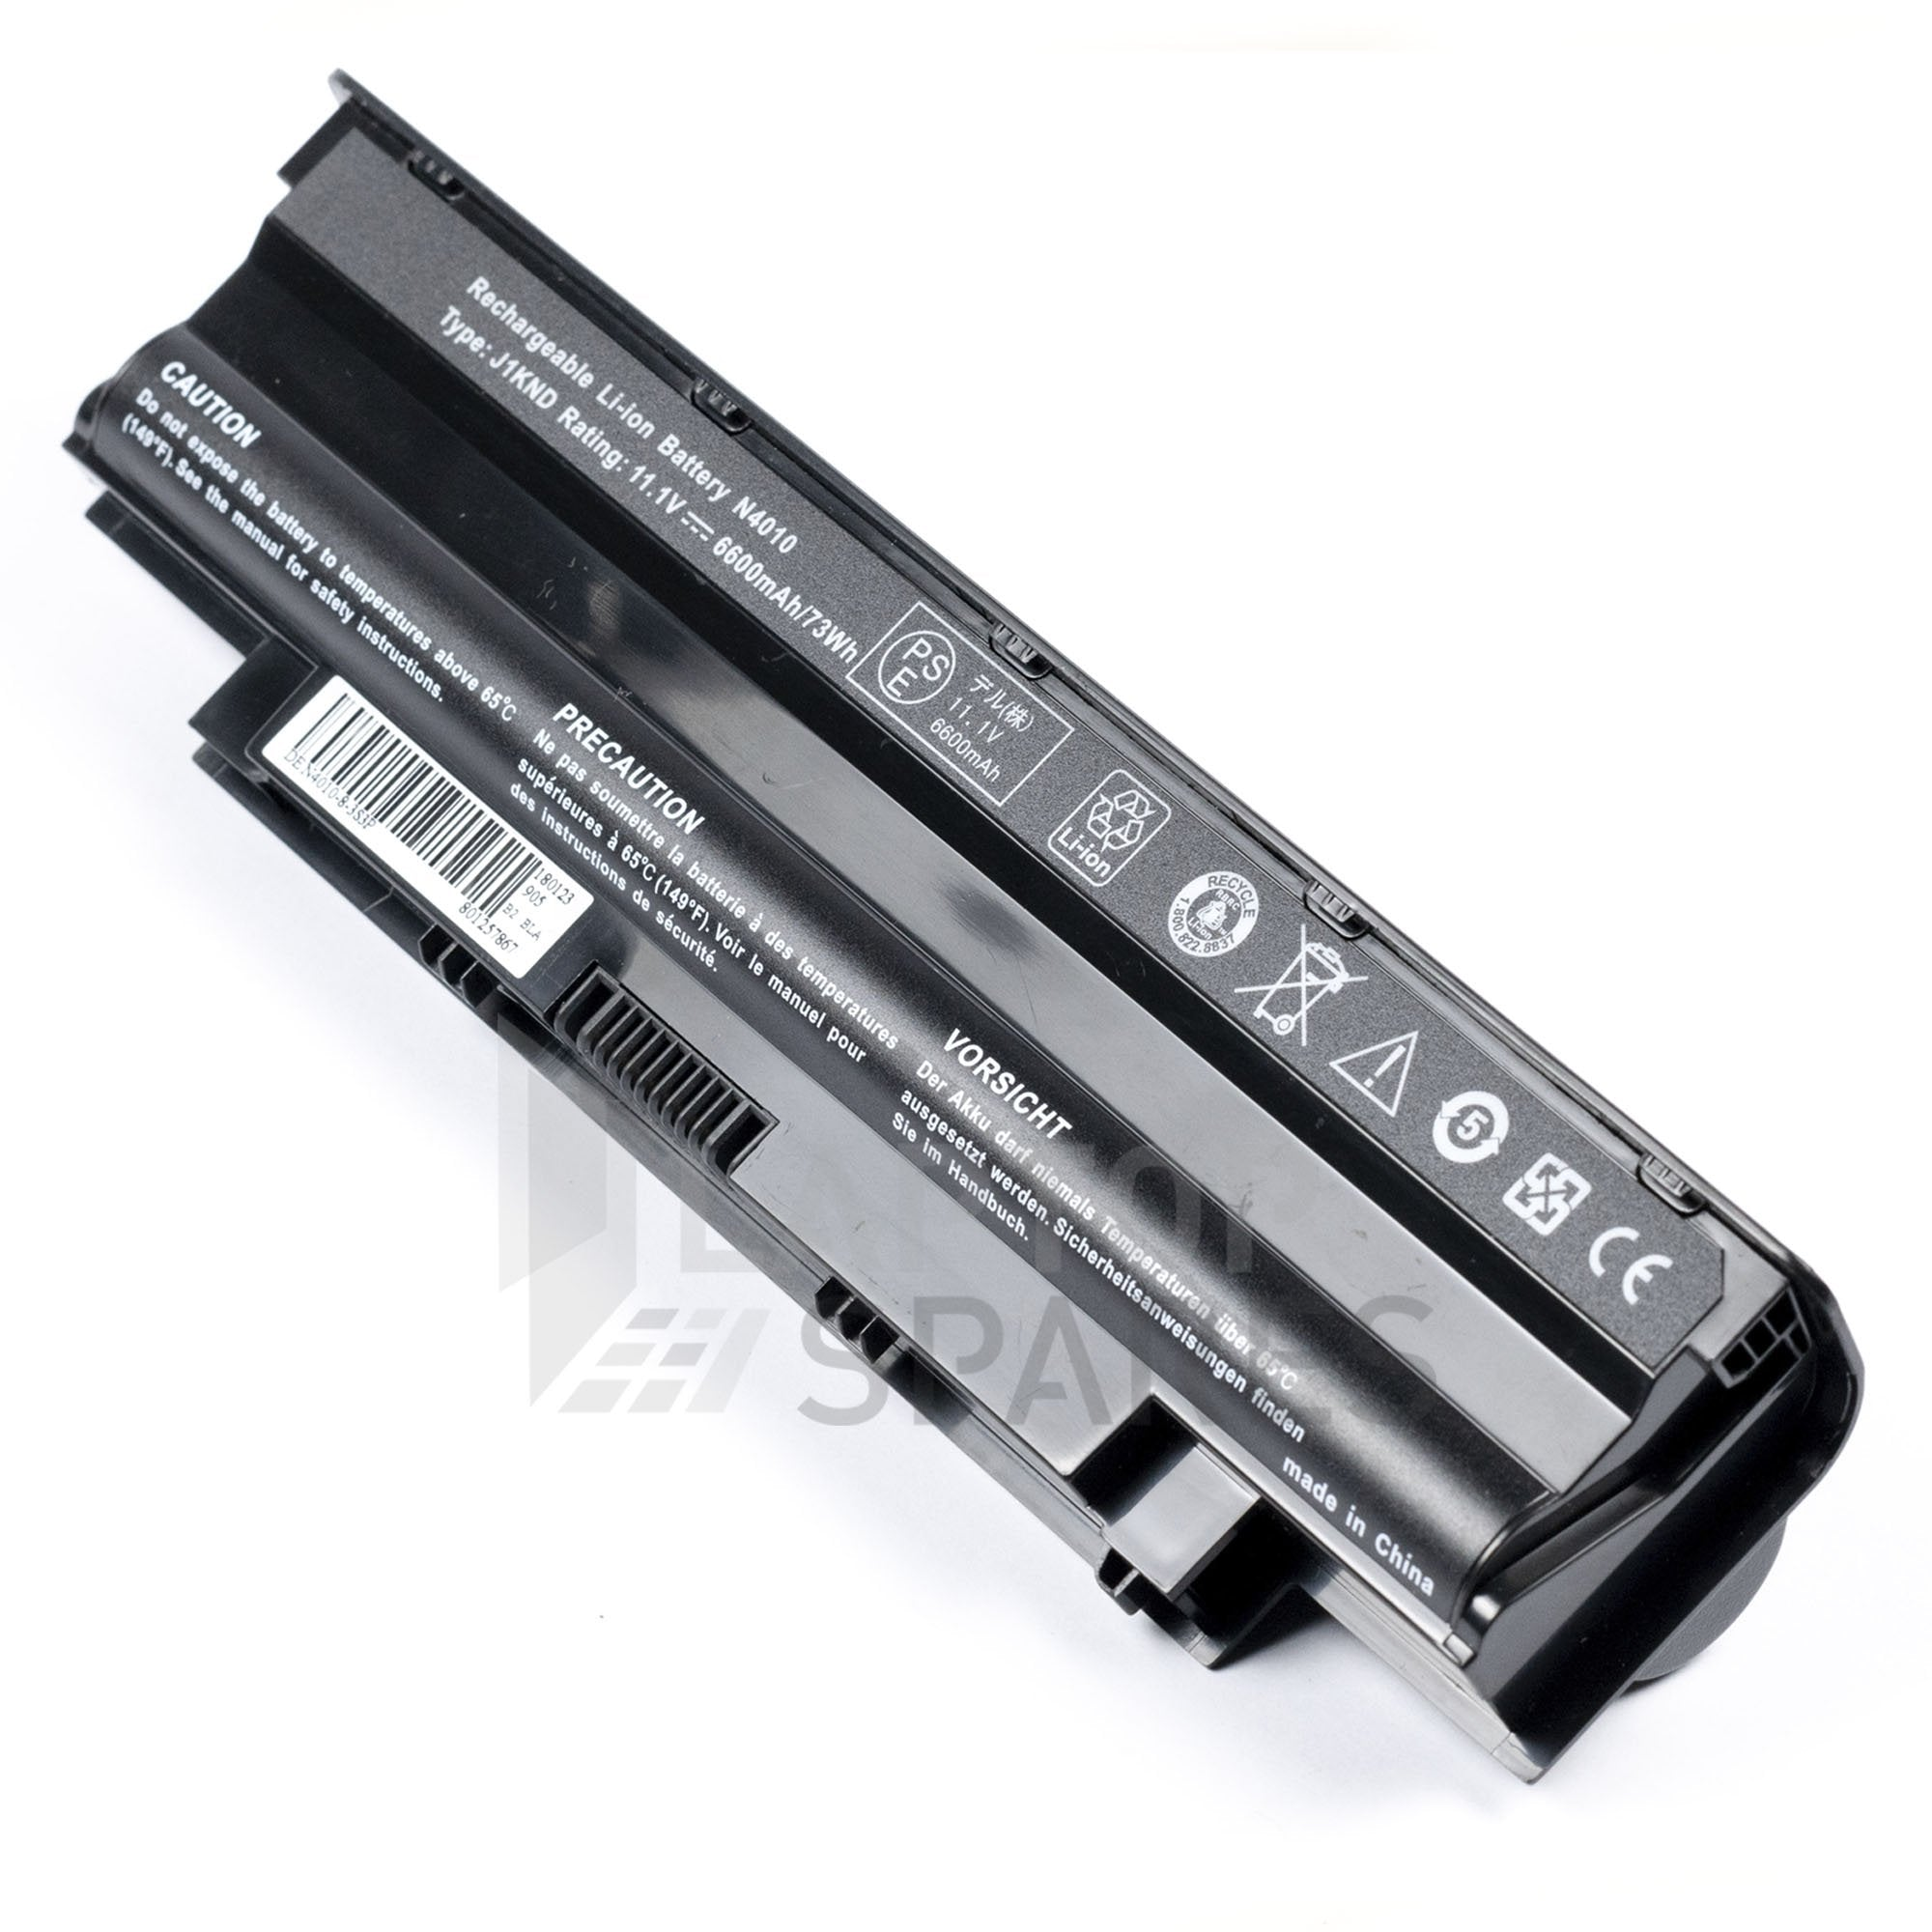 Dell Inspiron 13R N3010D-178 6600mAh 9 Cell Battery